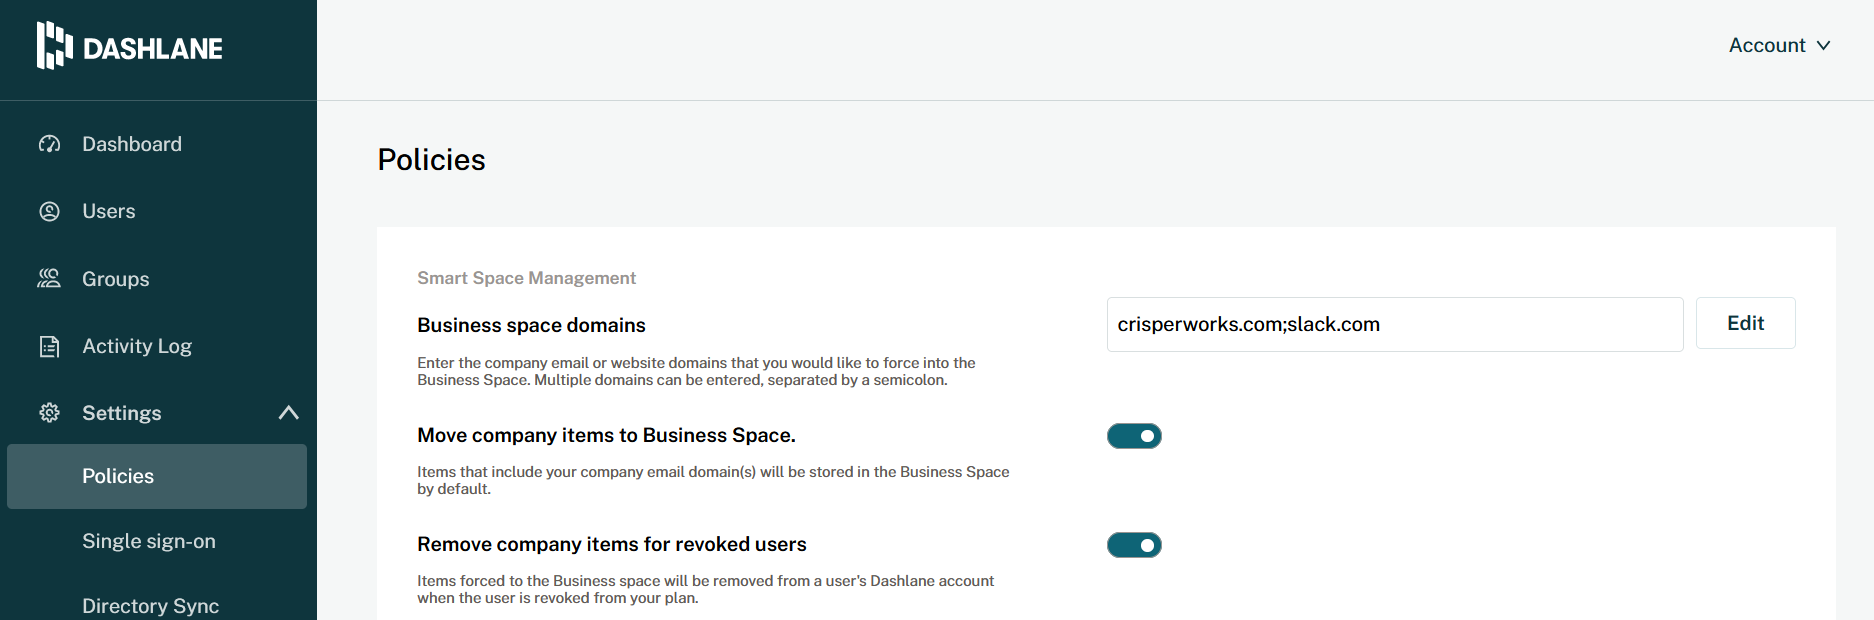 business_space_domain_1.png